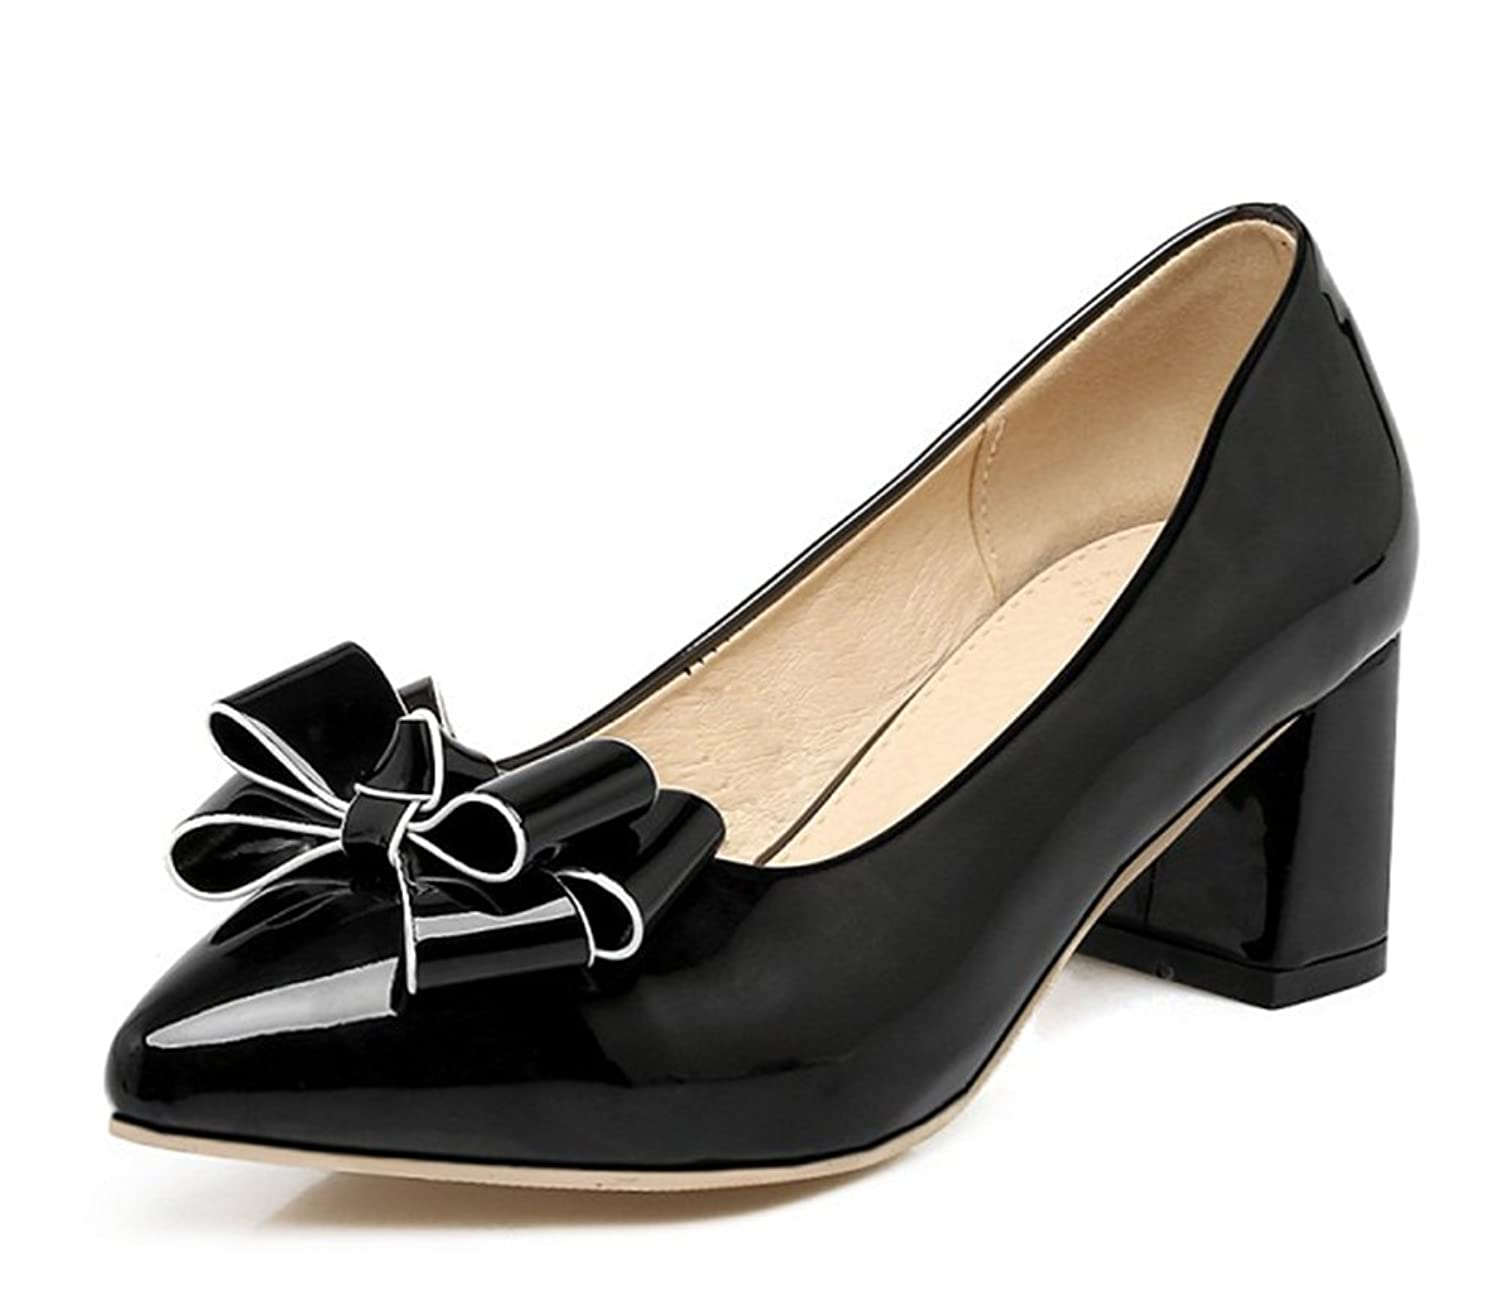 Aisun Women's Elegant Low Cut Pointed Toe Slip on Dress Stacked Medium Heels Pumps Shoes With Bows